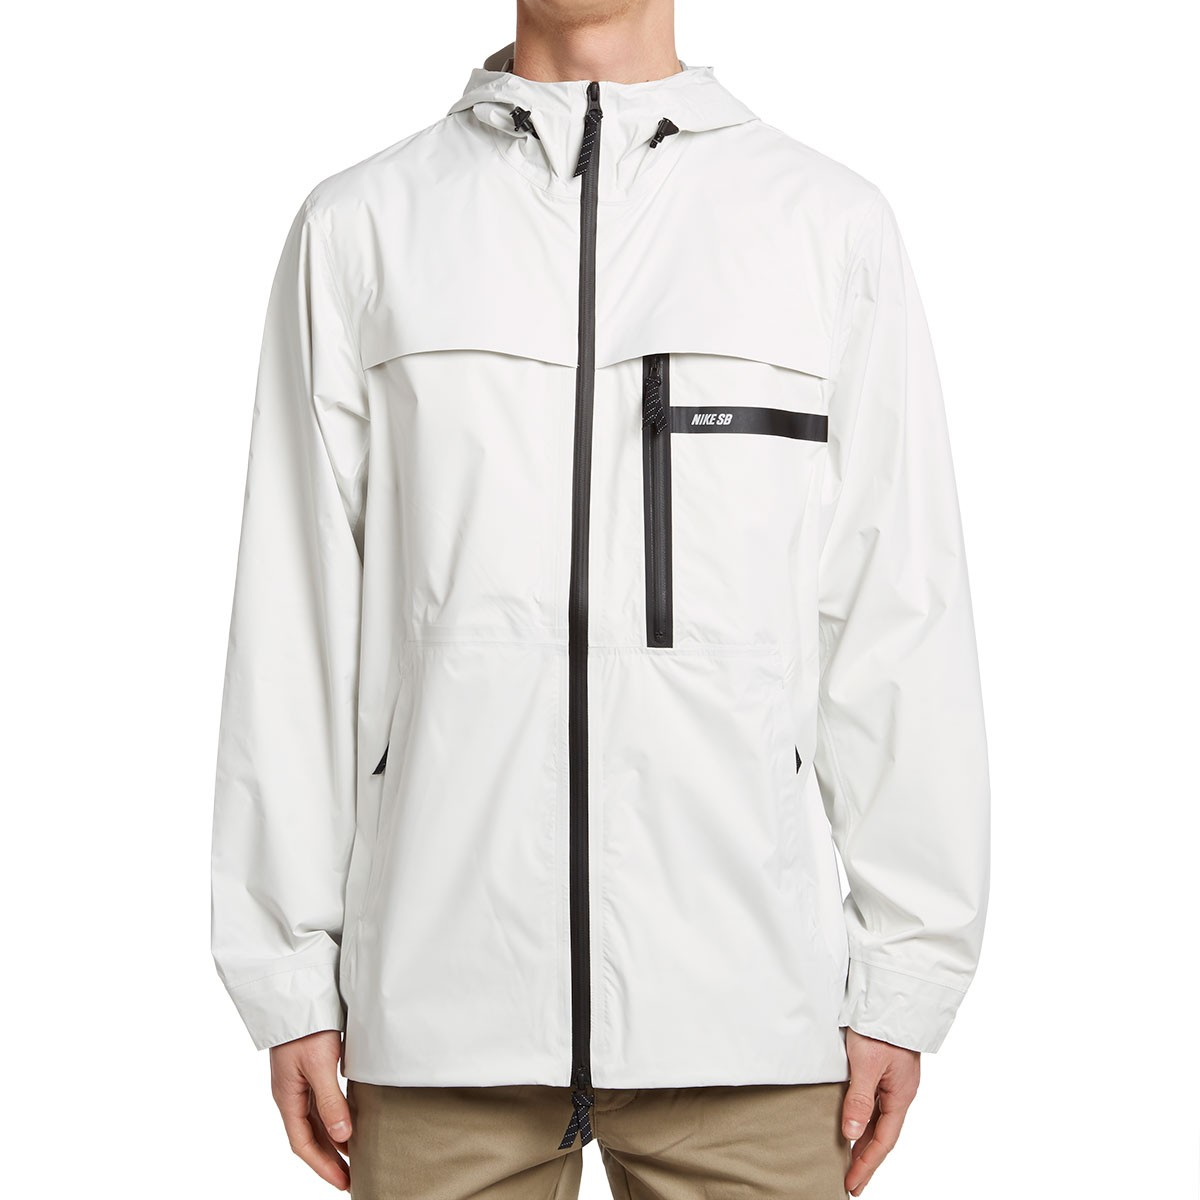 pretty cheap differently aliexpress Nike SB Steele Storm 5 Fit Jacket - Ivory